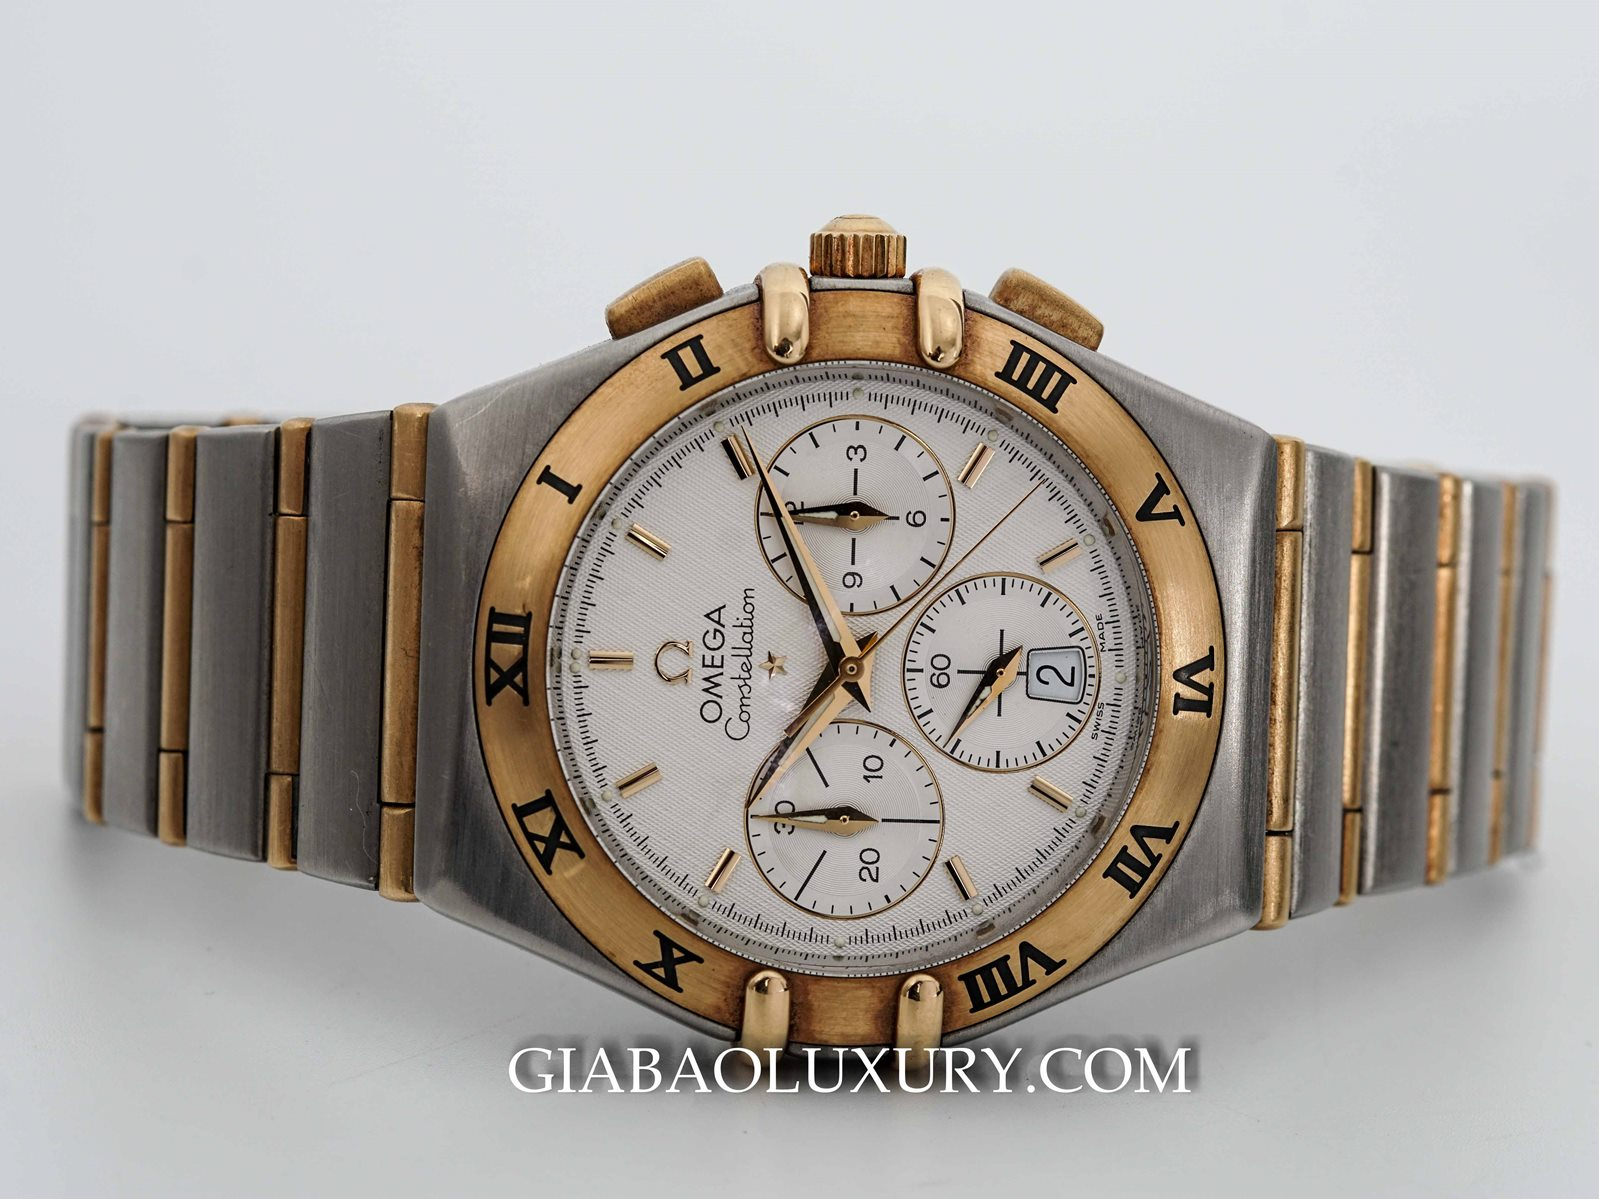 ĐỒNG HỒ OMEGA CONSTELLATION CHRONOGRAPH YELLOW GOLD AND STAINLESS STEEL